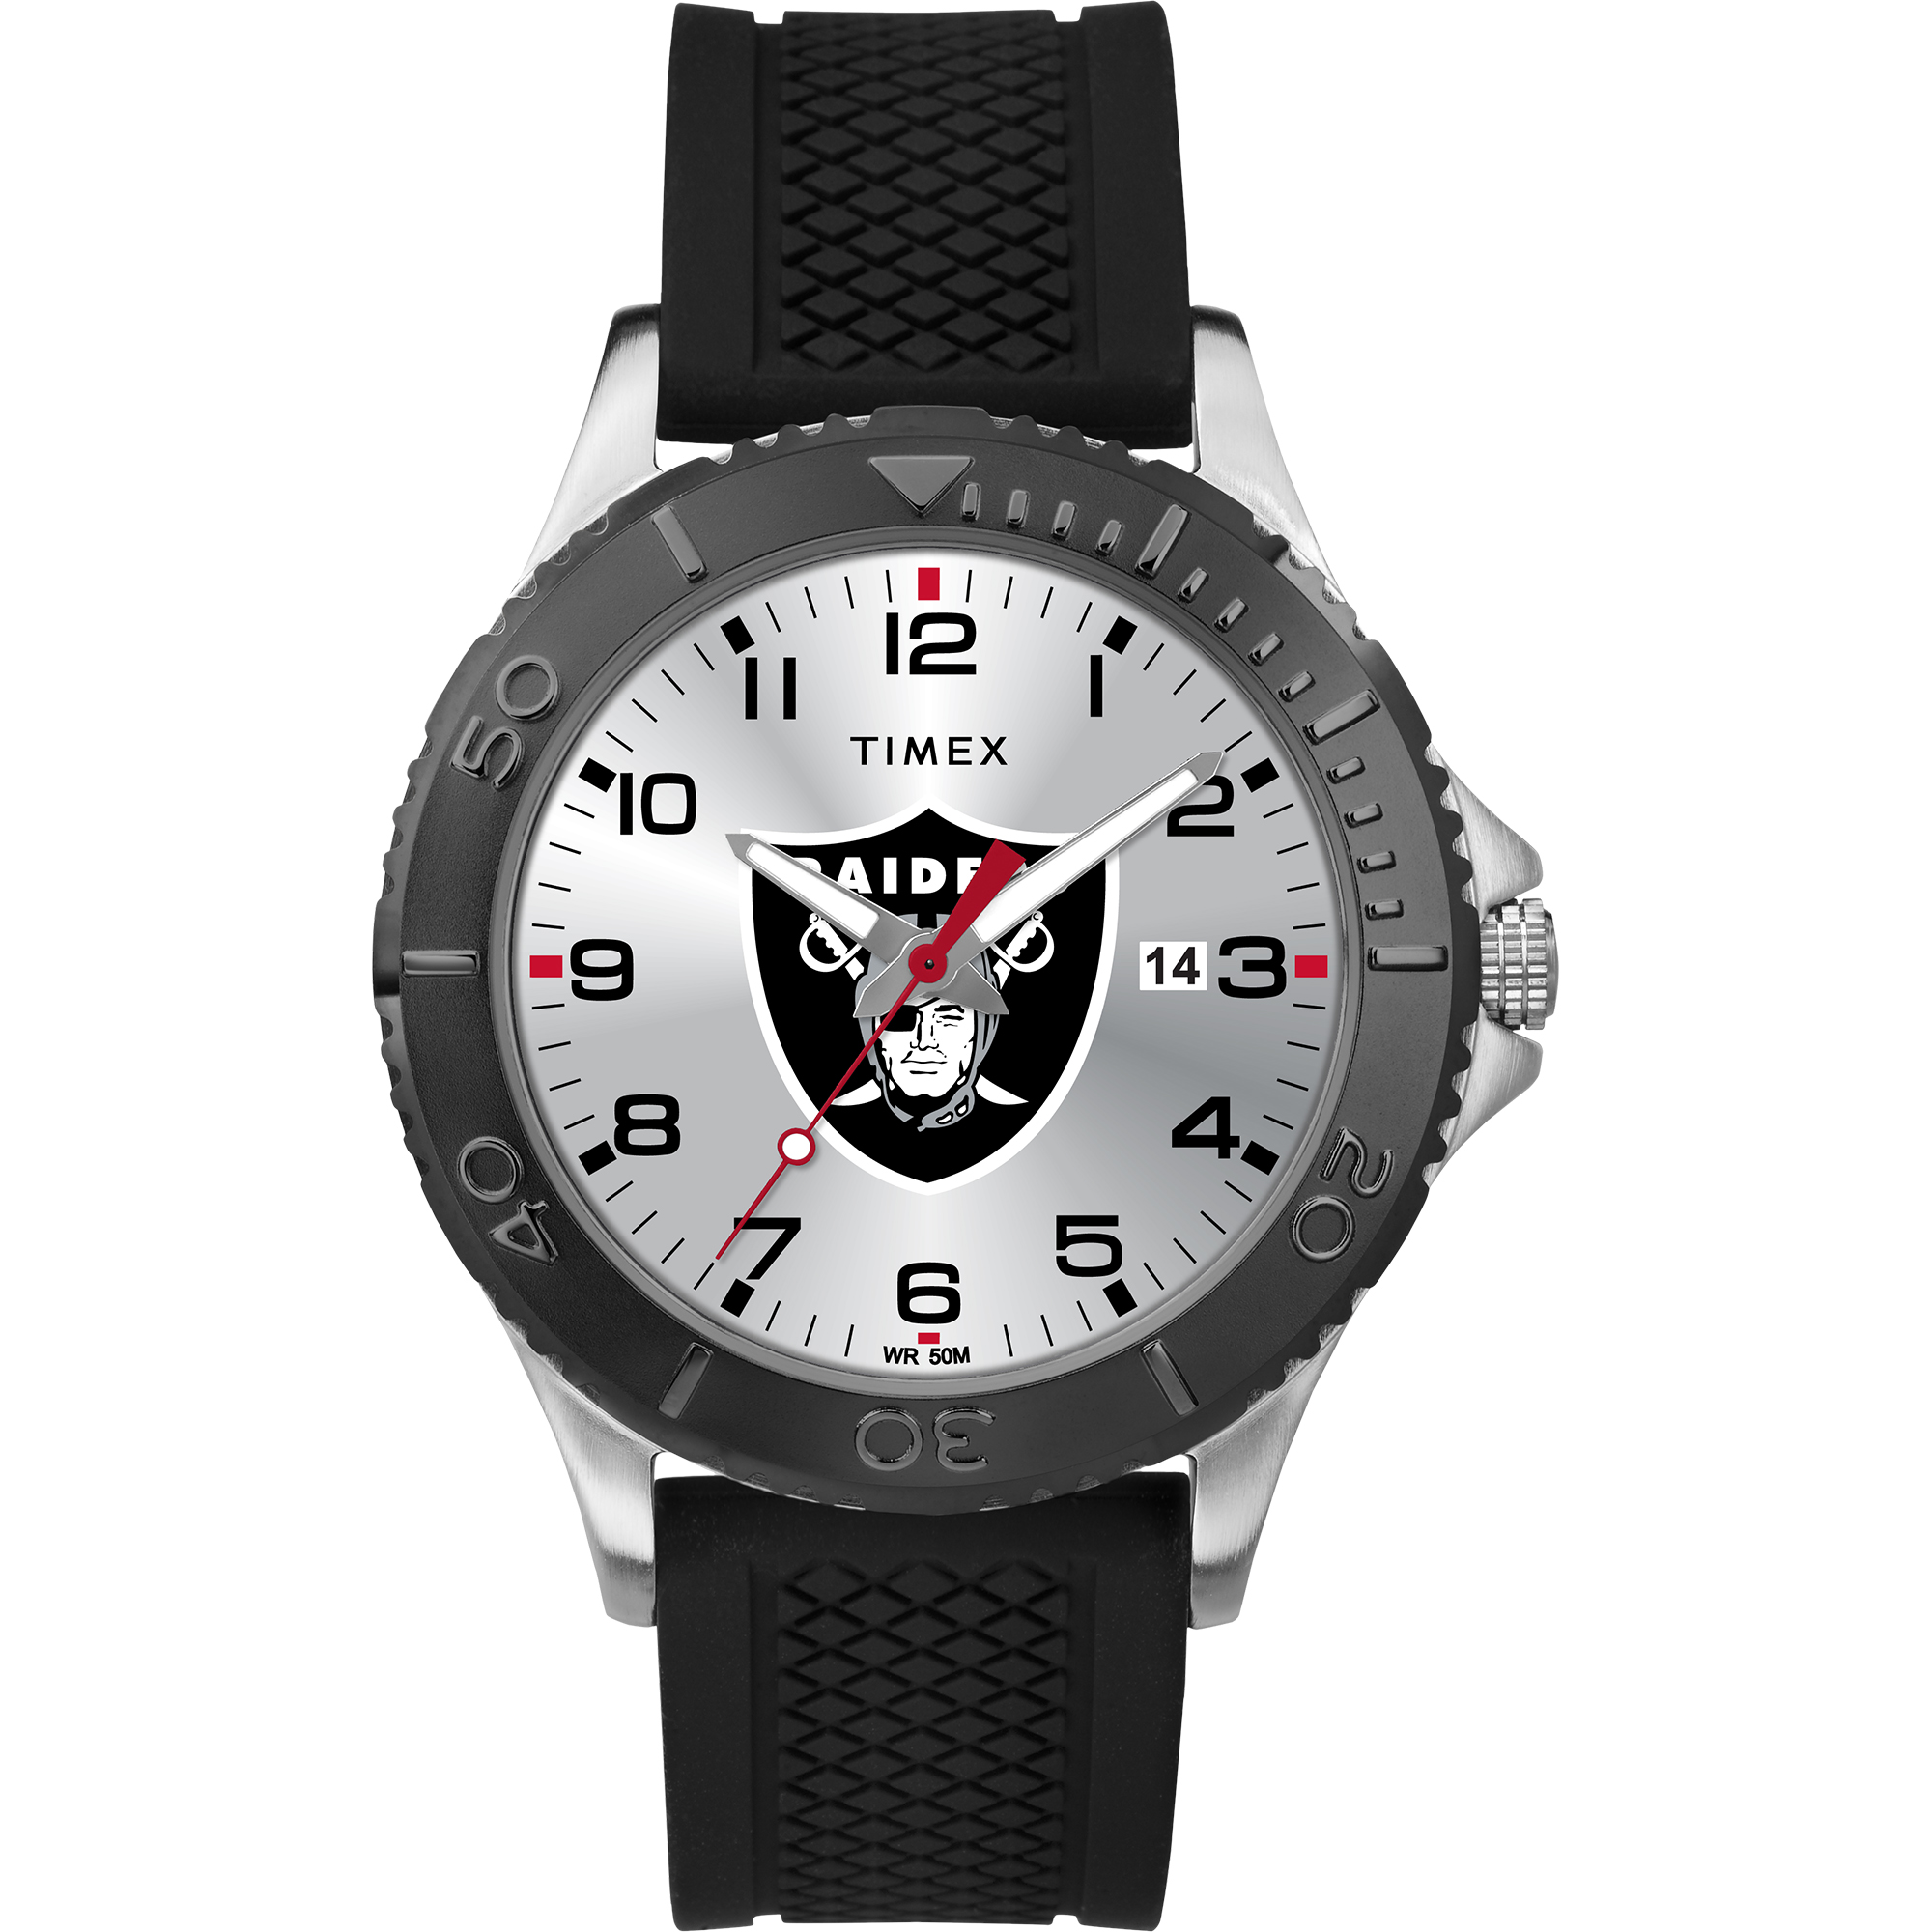 Timex - NFL Tribute Collection Gamer Black Men's Watch, Oakland Raiders